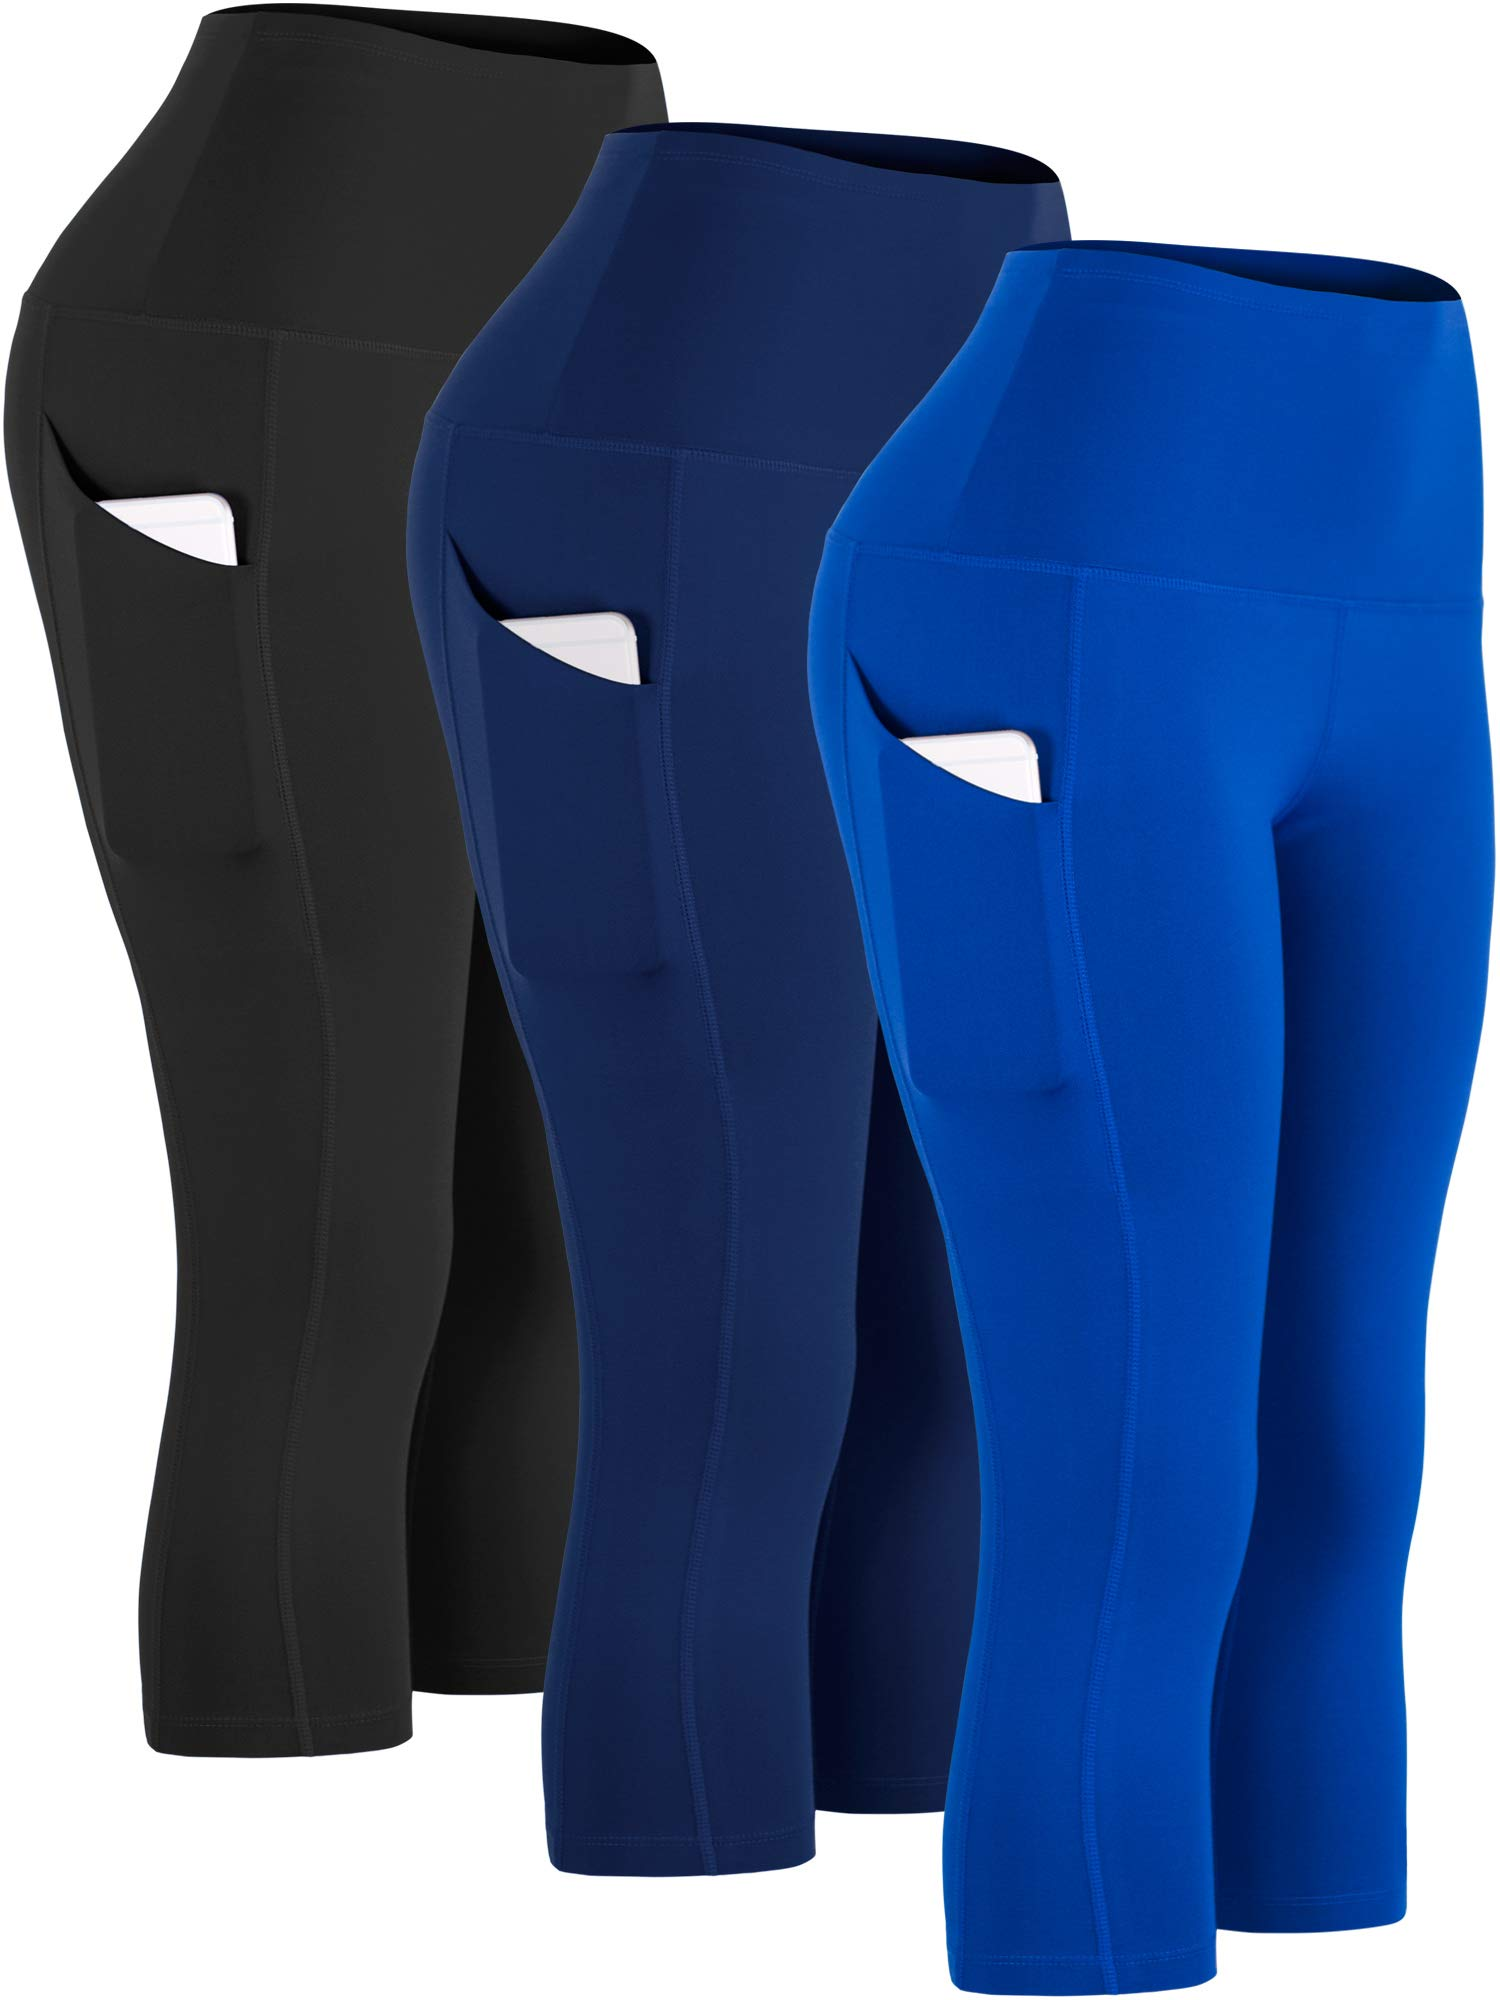 Cadmus Womens High Waist Workout Legging Capris for Yoga w Side Pockets,1109,Black & Navy Blue & Blue,Small by Cadmus